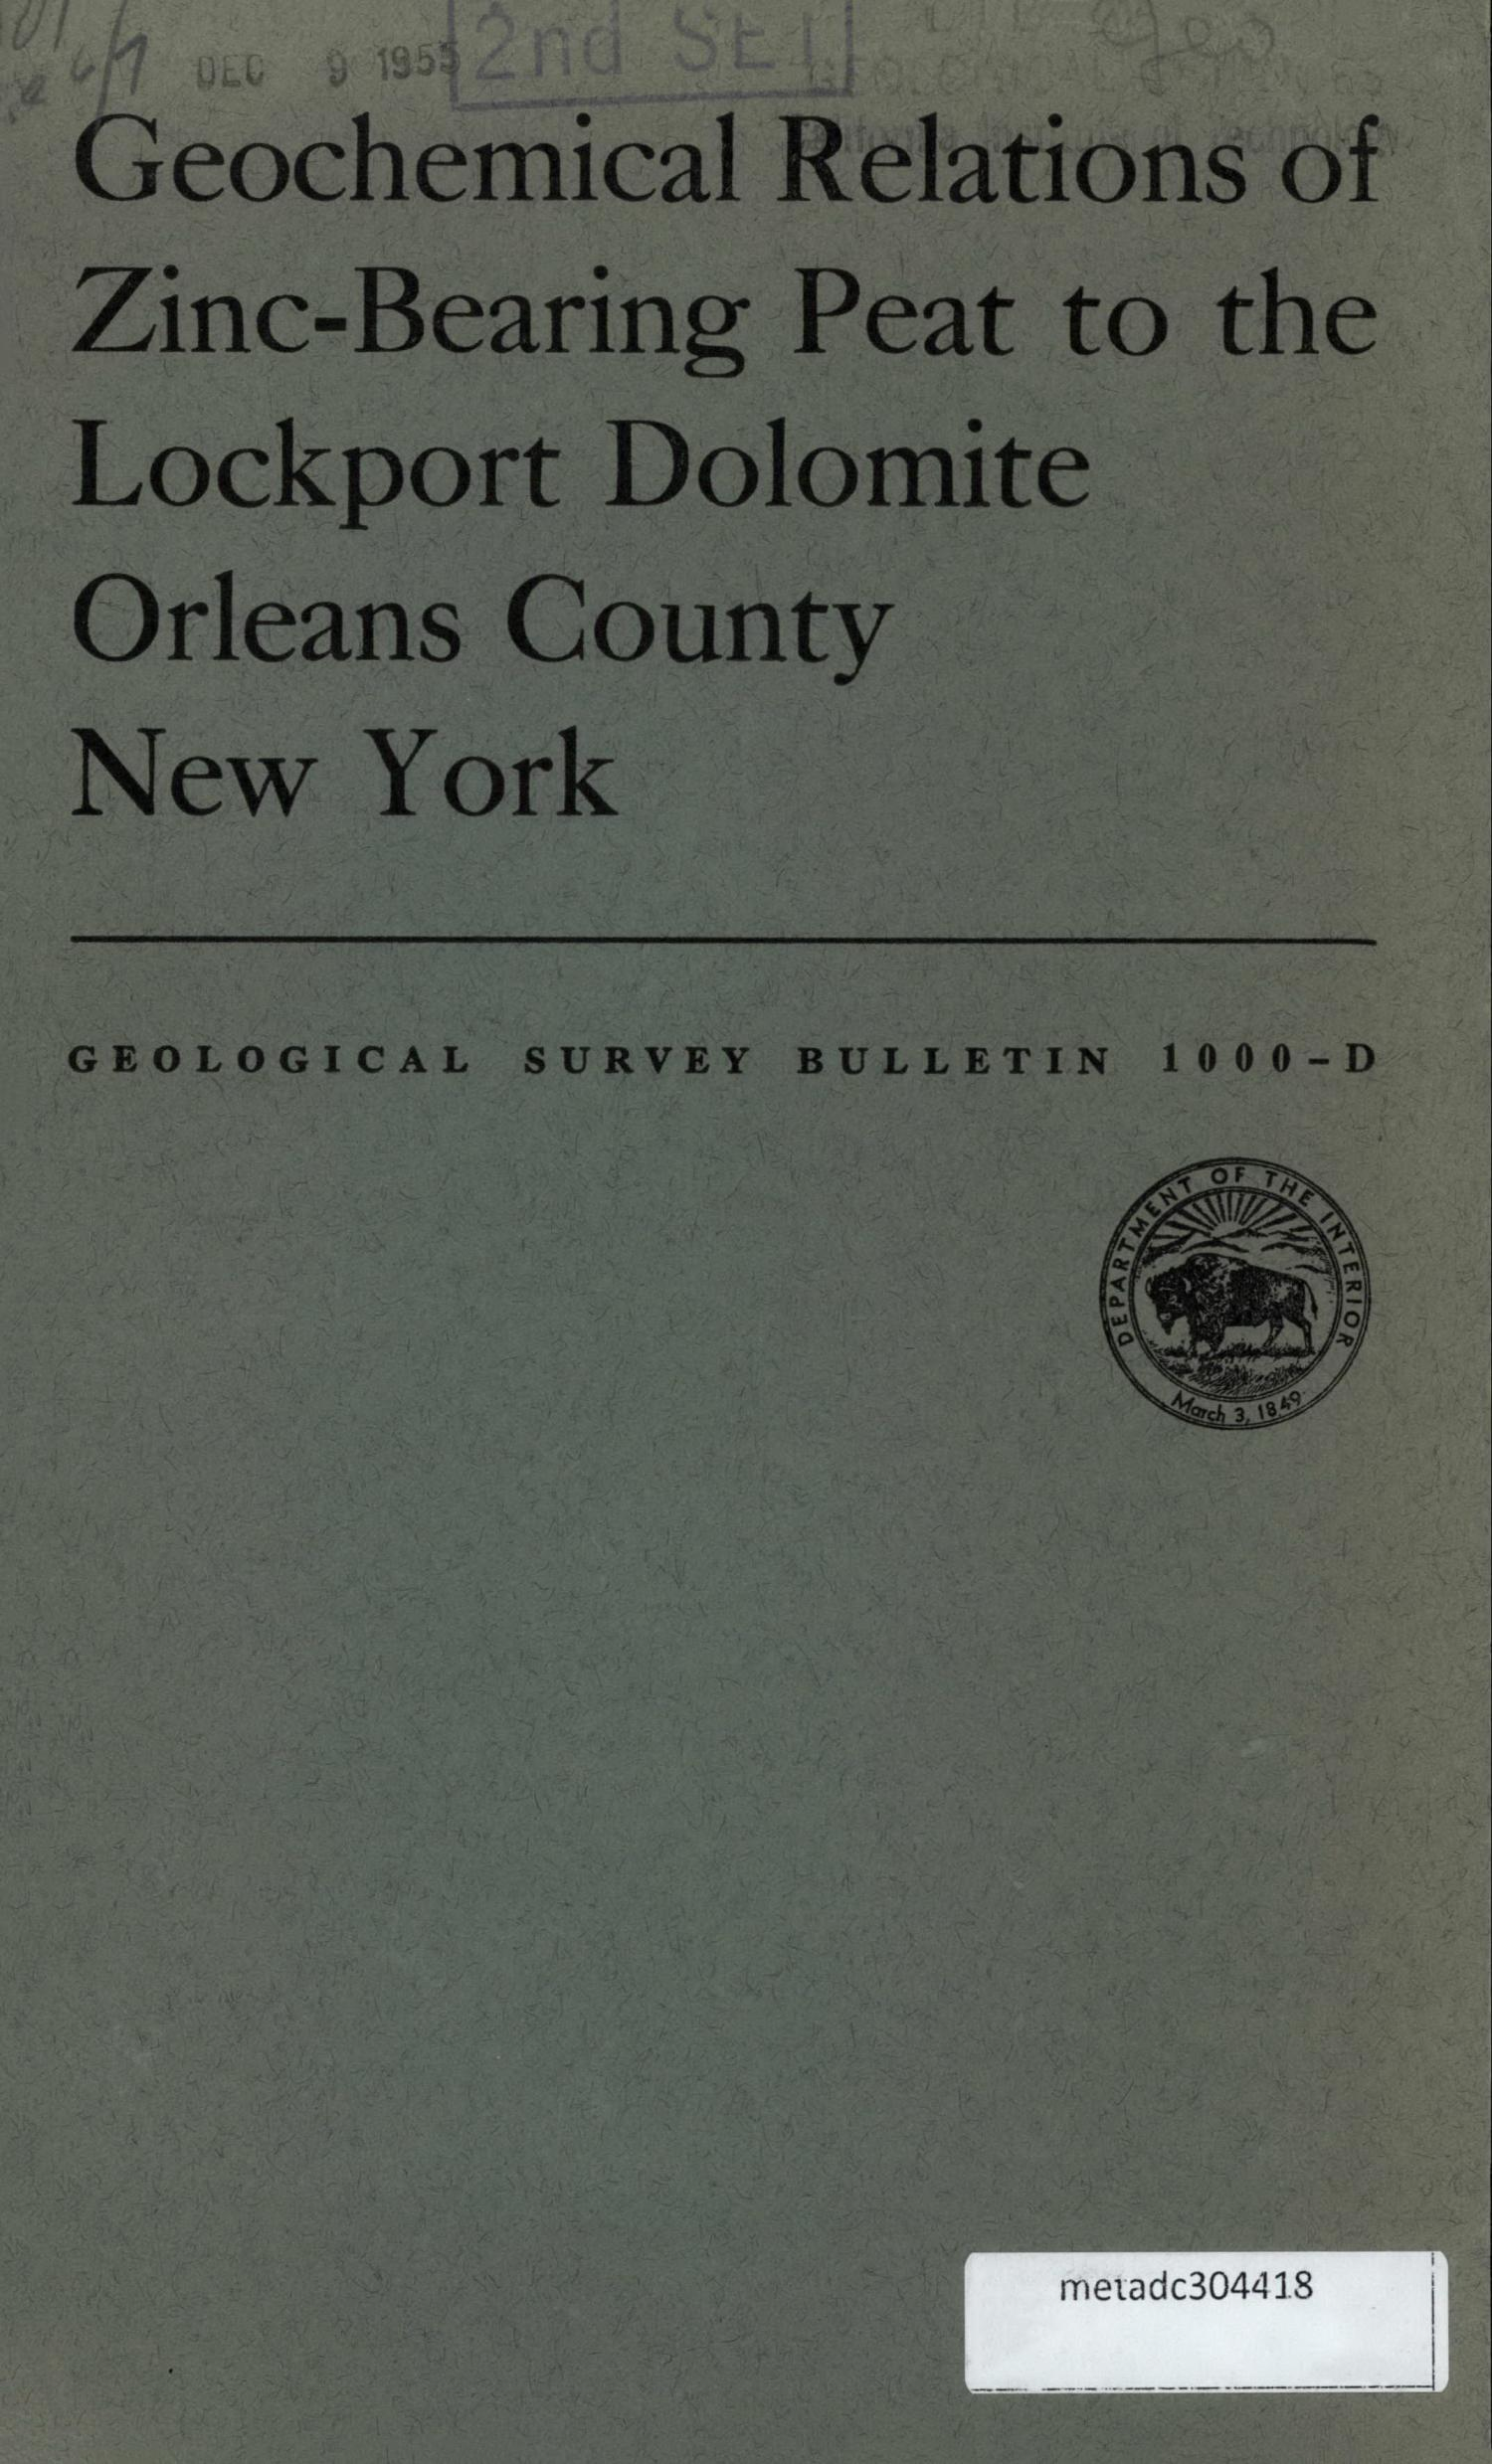 New york orleans county - Geochemical Relations Of Zinc Bearing Peat To The Lockport Dolomite Orleans County New York Digital Library